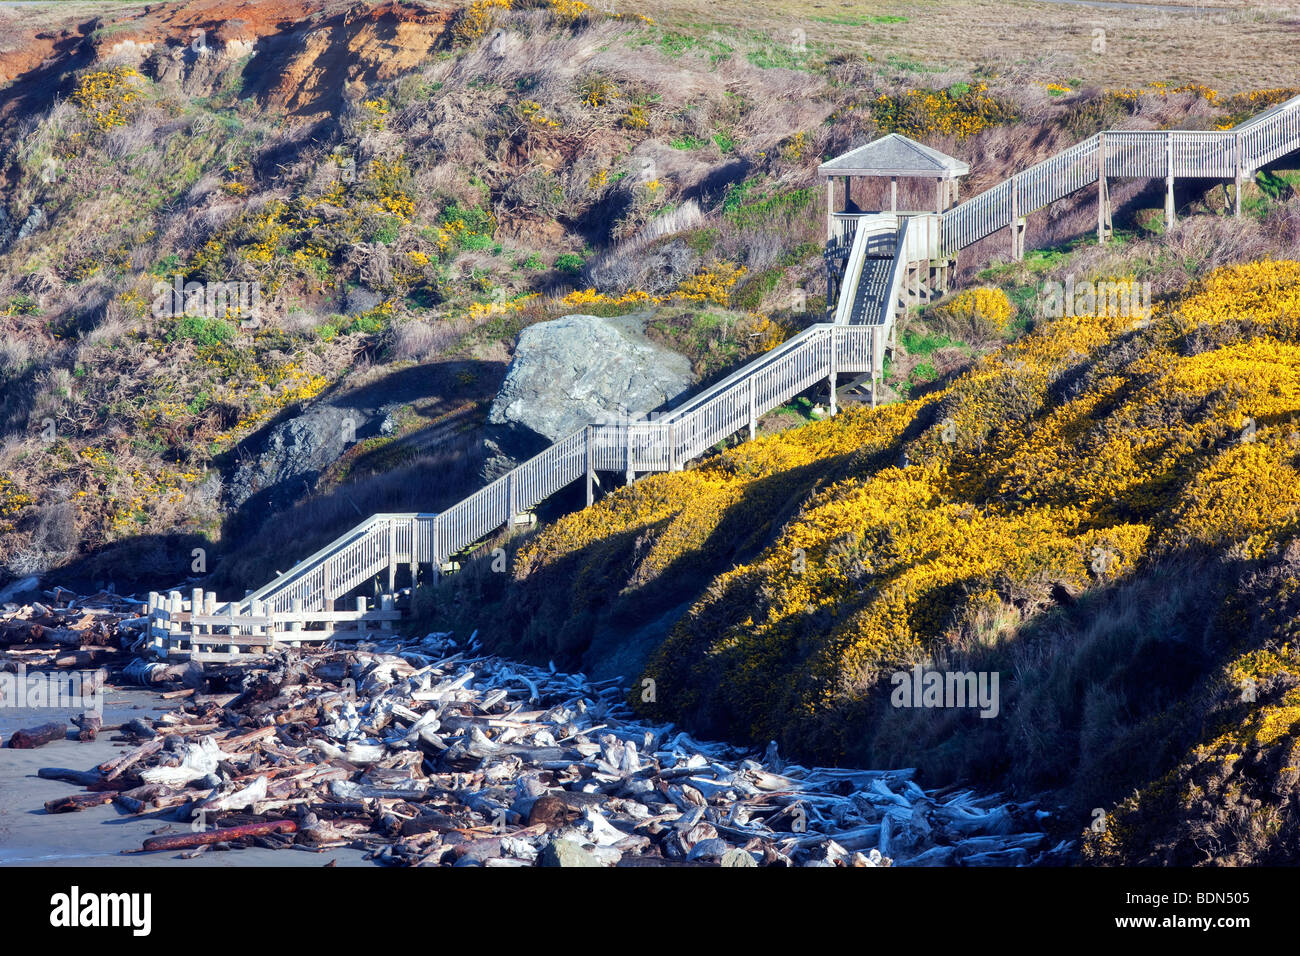 Stairway to beach at Bandon beach, Oregon with blooming gorse. - Stock Image